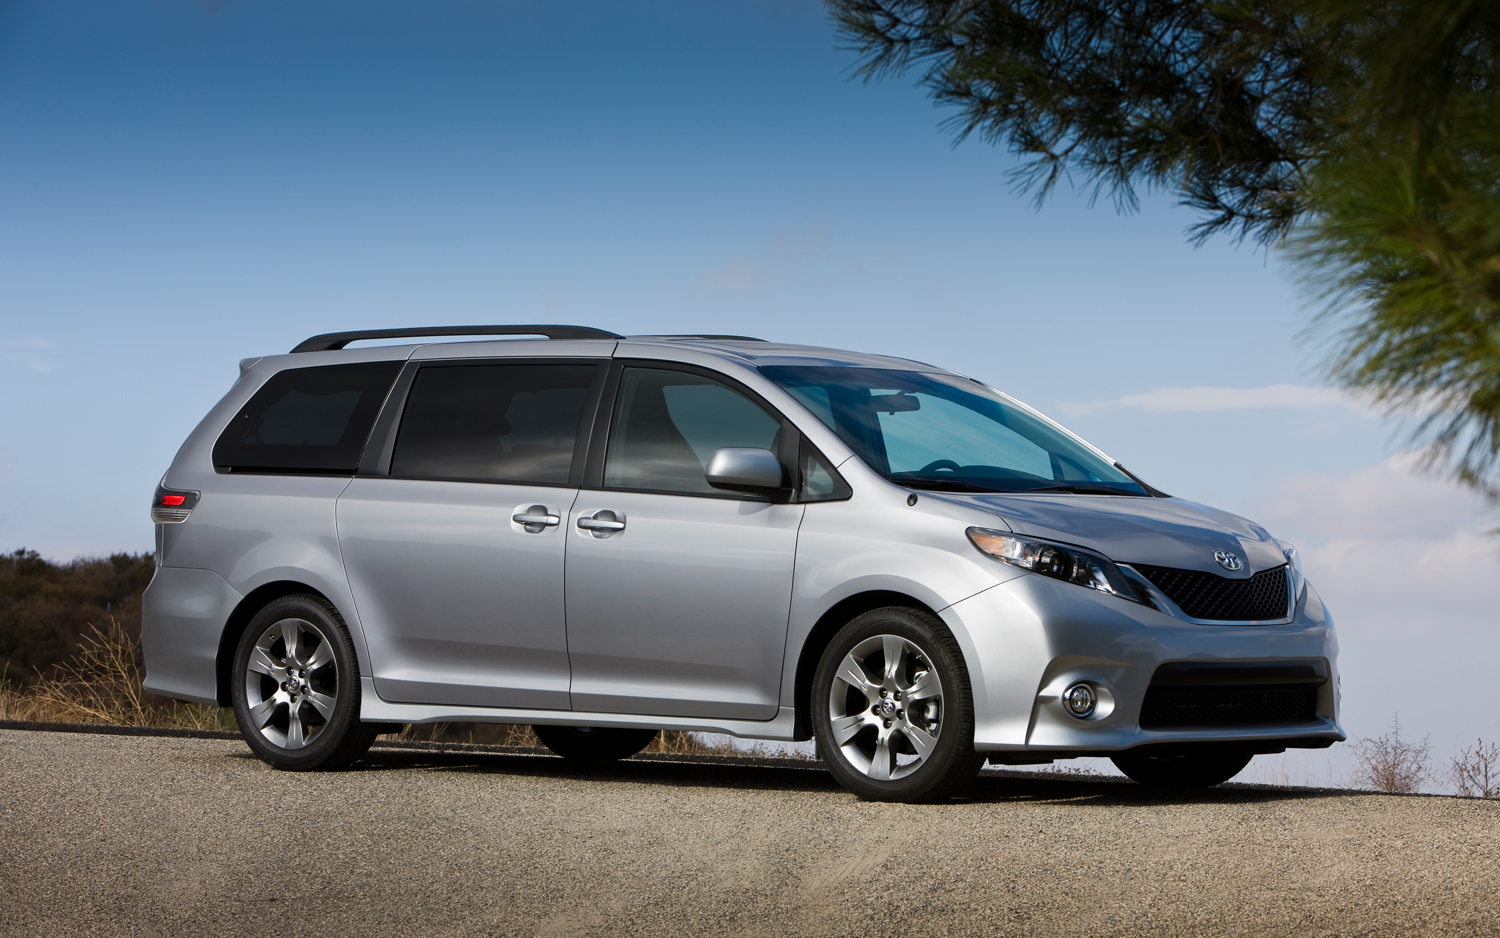 toyota limited sienna all cars drive used auto saugus navigation mall xle at wheel dvd